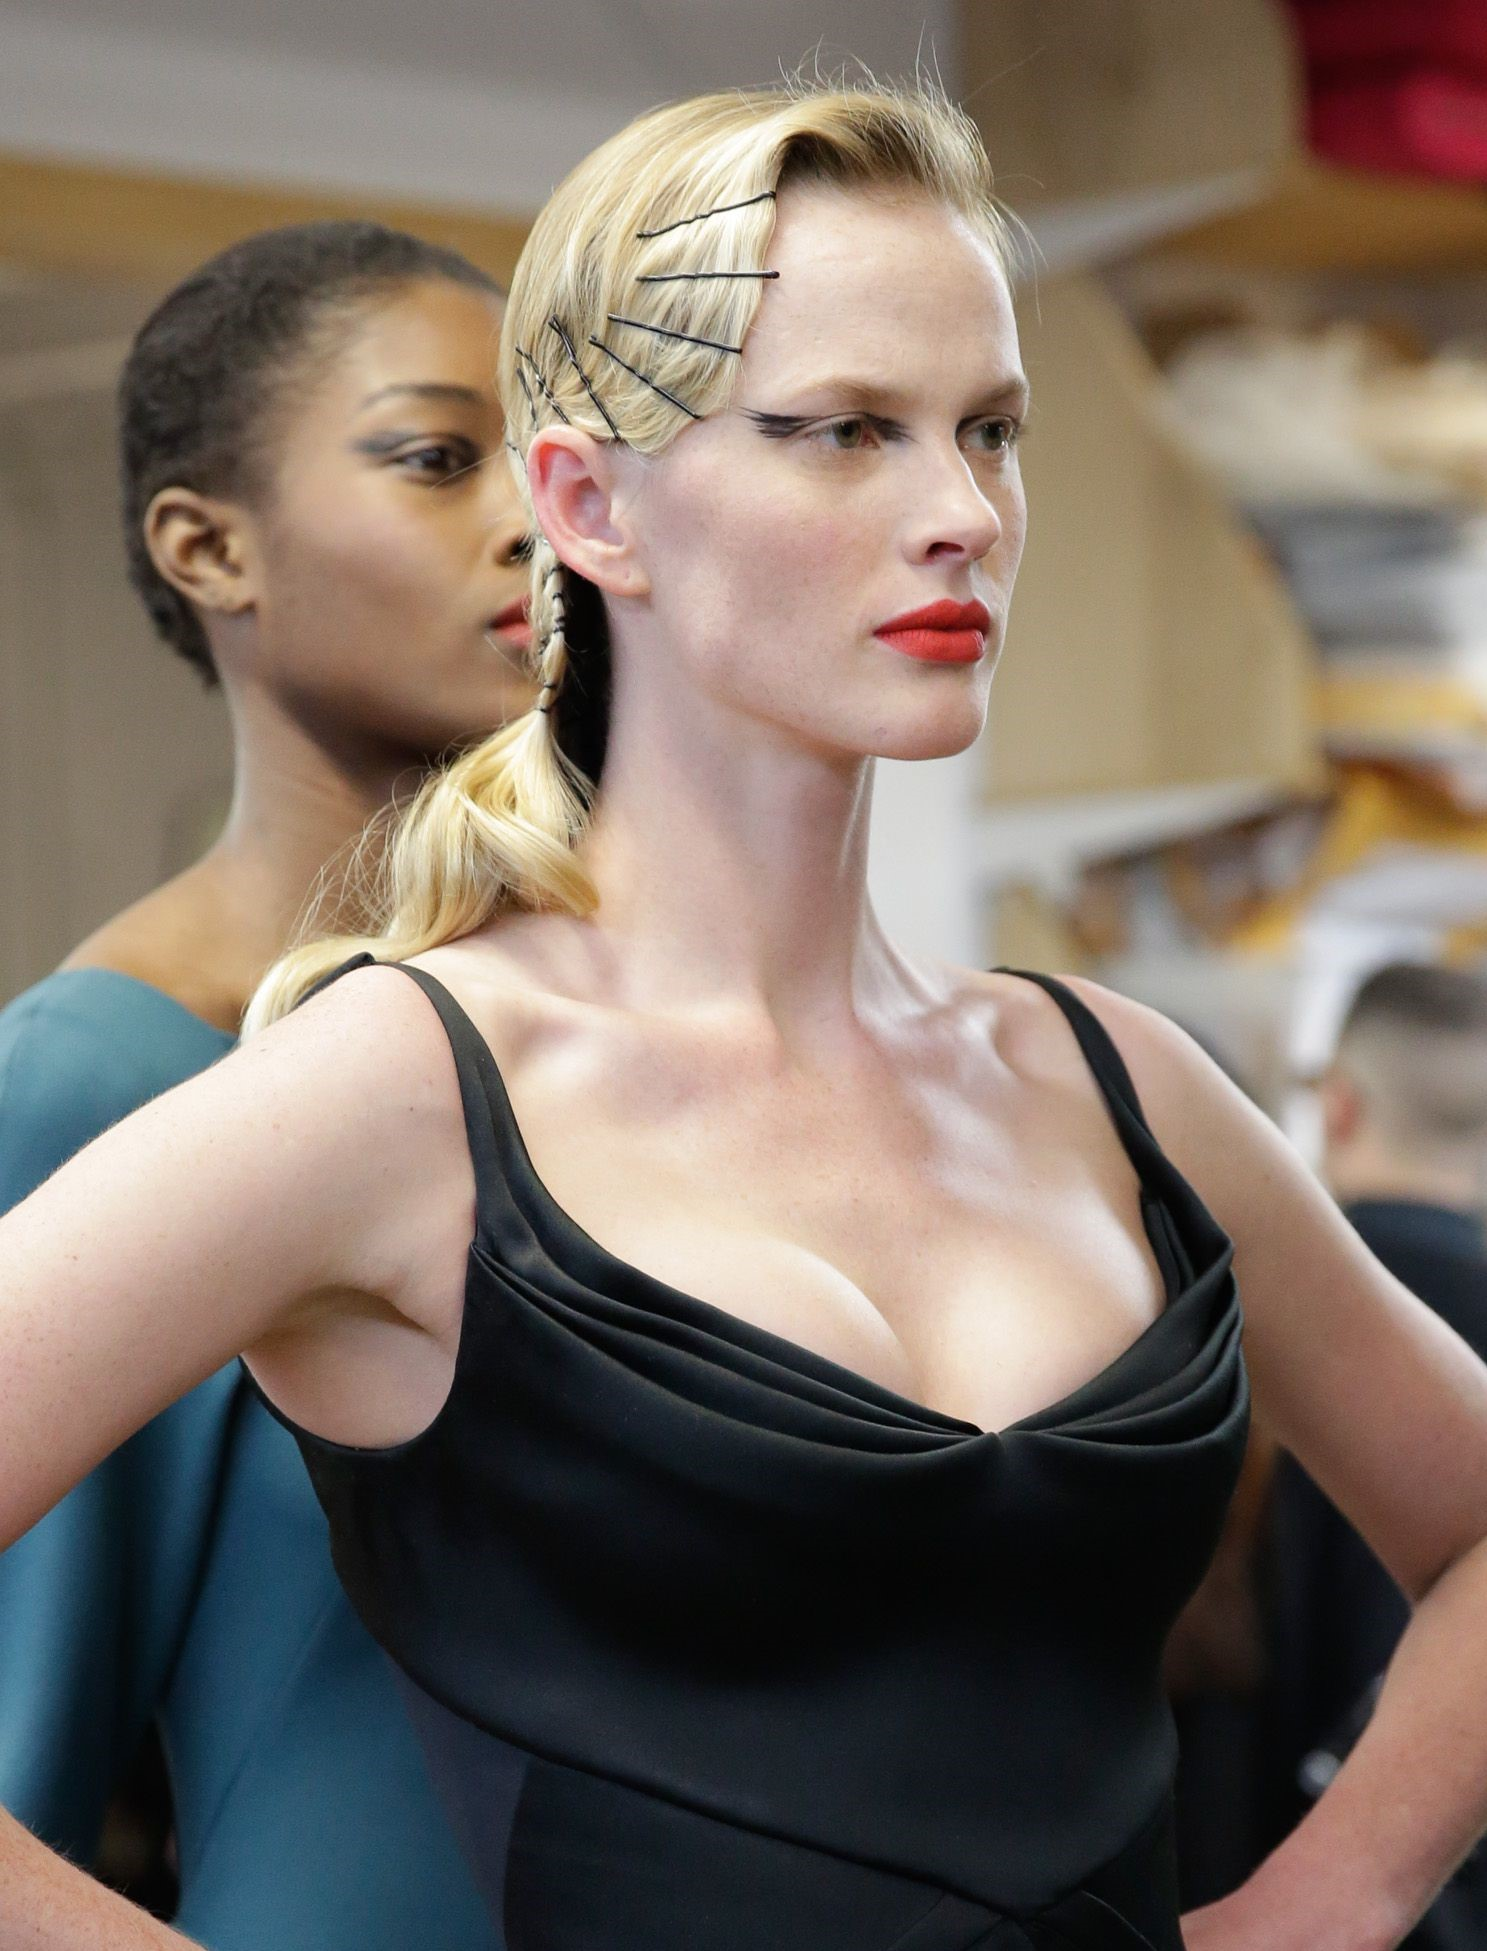 how-to-style-hair-accessories-bobby-pin-hairstyles-ways-to-wear-scattered-black-blonde-elegant-dress-updo.jpg